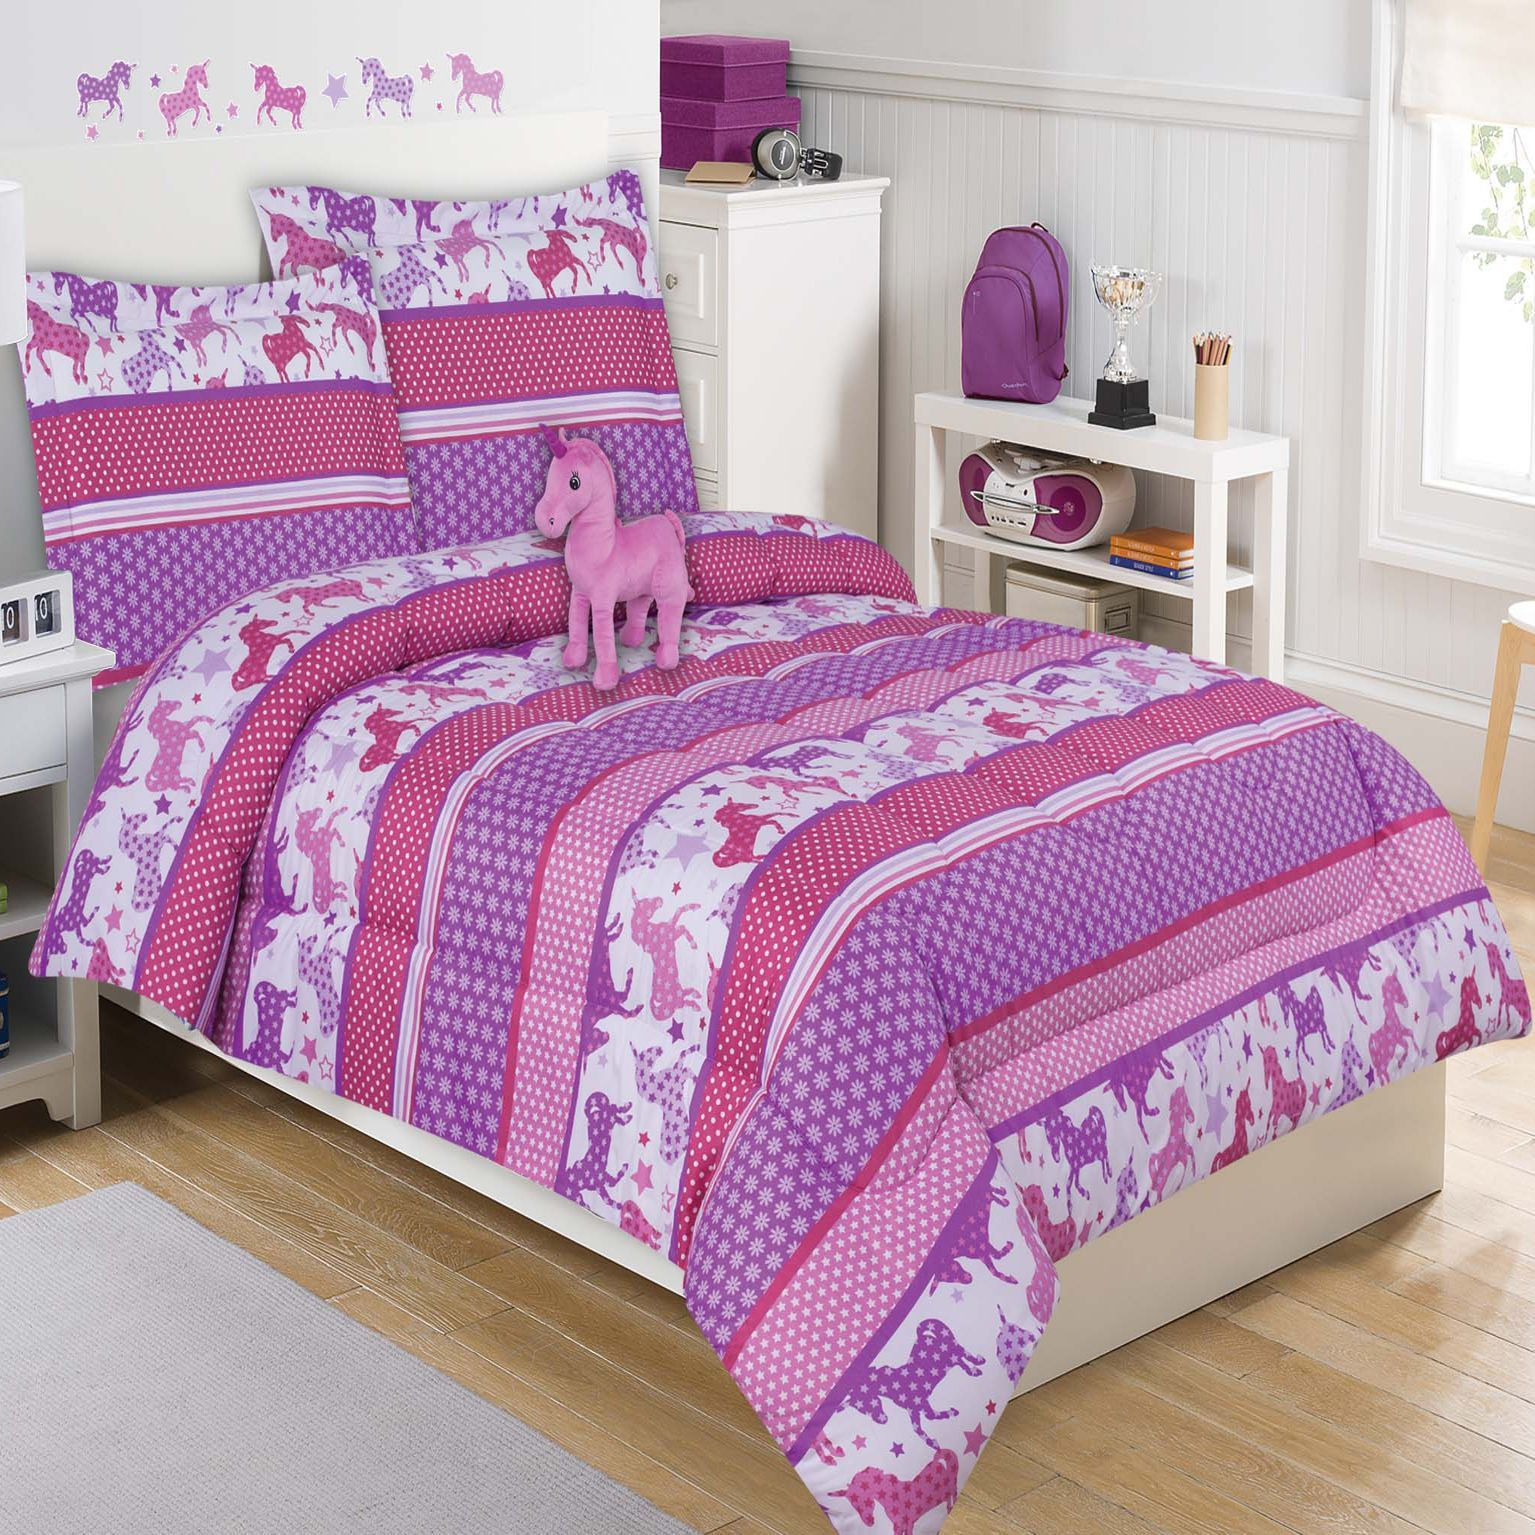 Cute Unicorns With Stars And Flowers Which Bloom Beautifully On